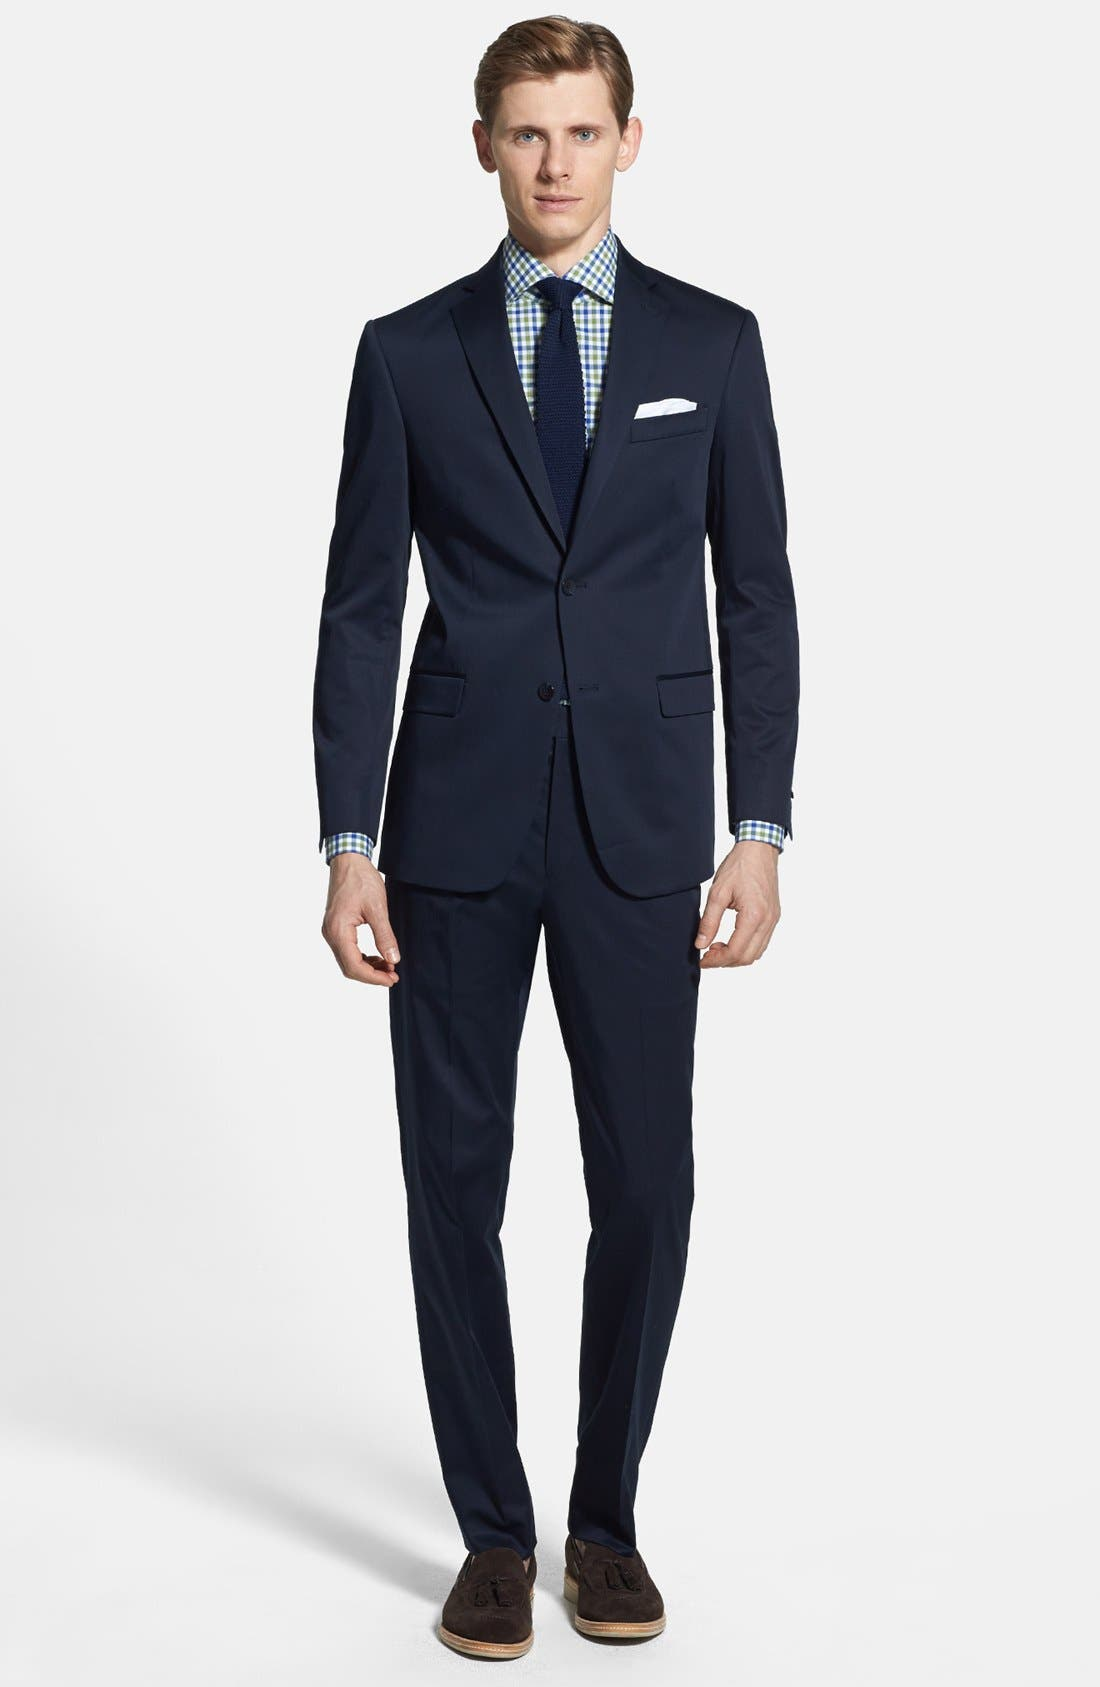 Alternate Image 1 Selected - 2B SV FF SOLID TRIM FIT SUIT